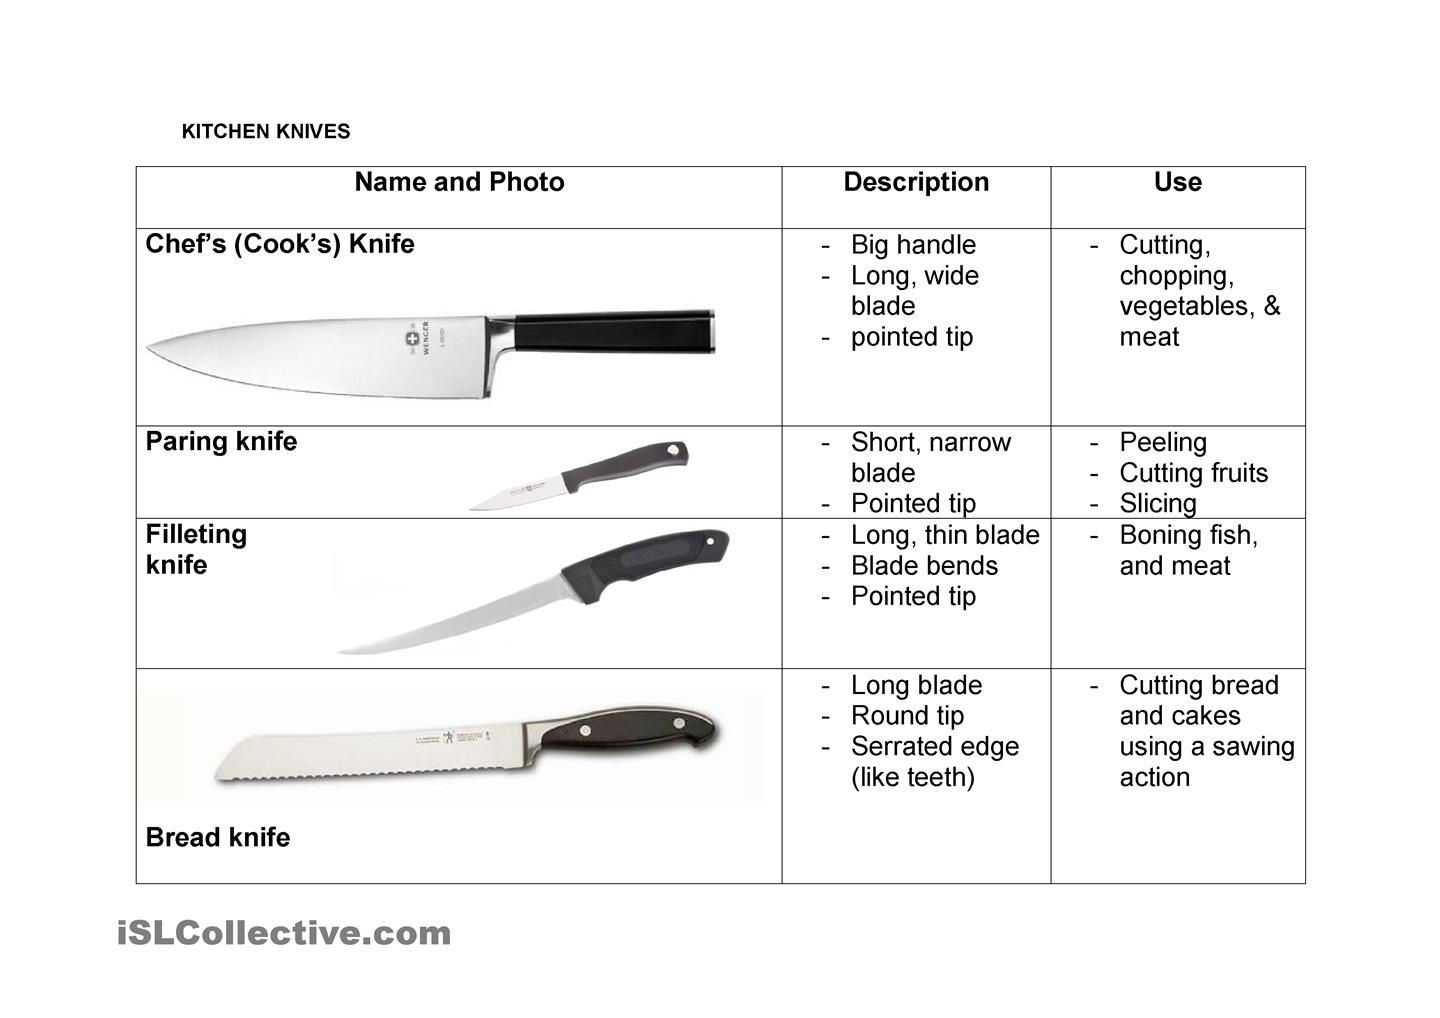 Culinary Knife Skills Worksheet Kitchen Knives